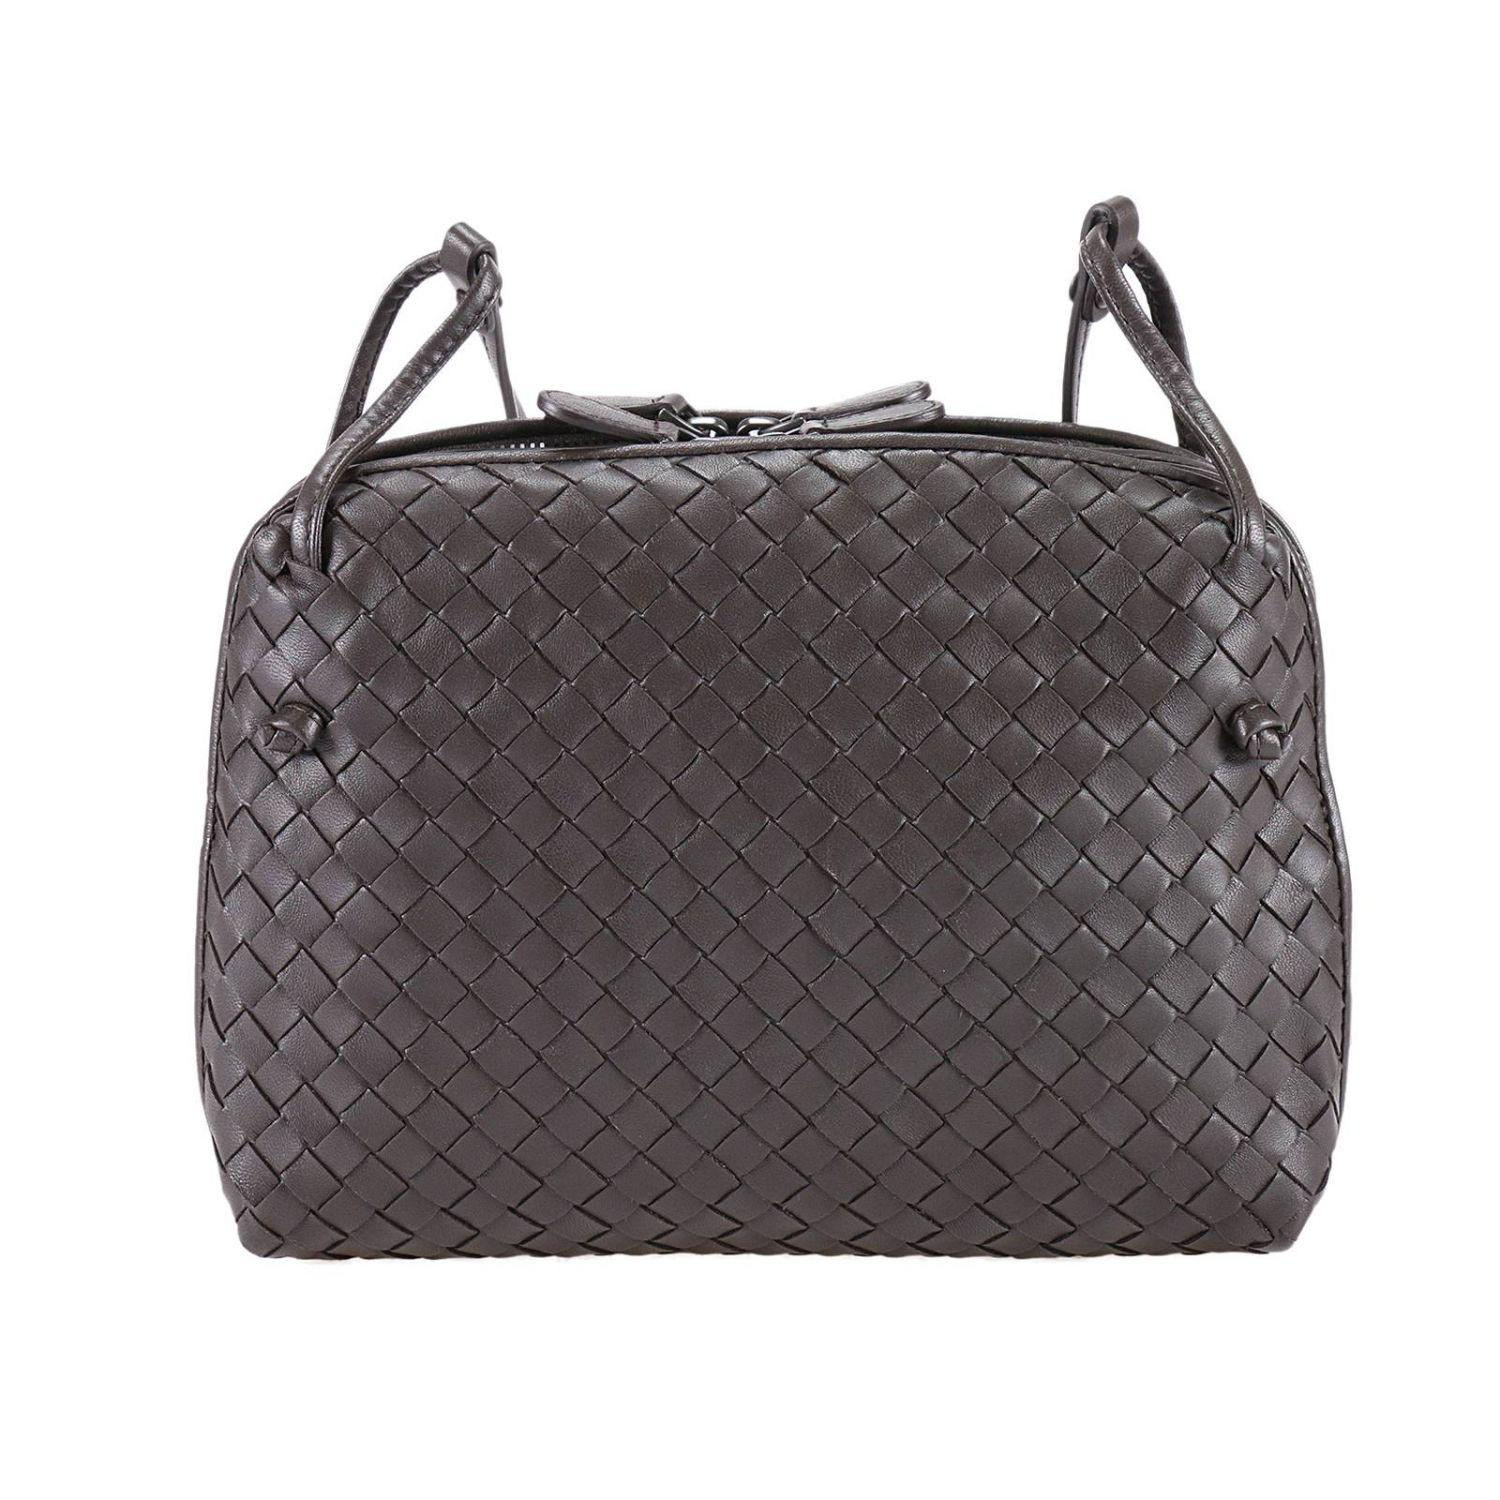 f3b8f23ae9ff Bottega Veneta Mini Bag Handbag Woman - Lyst